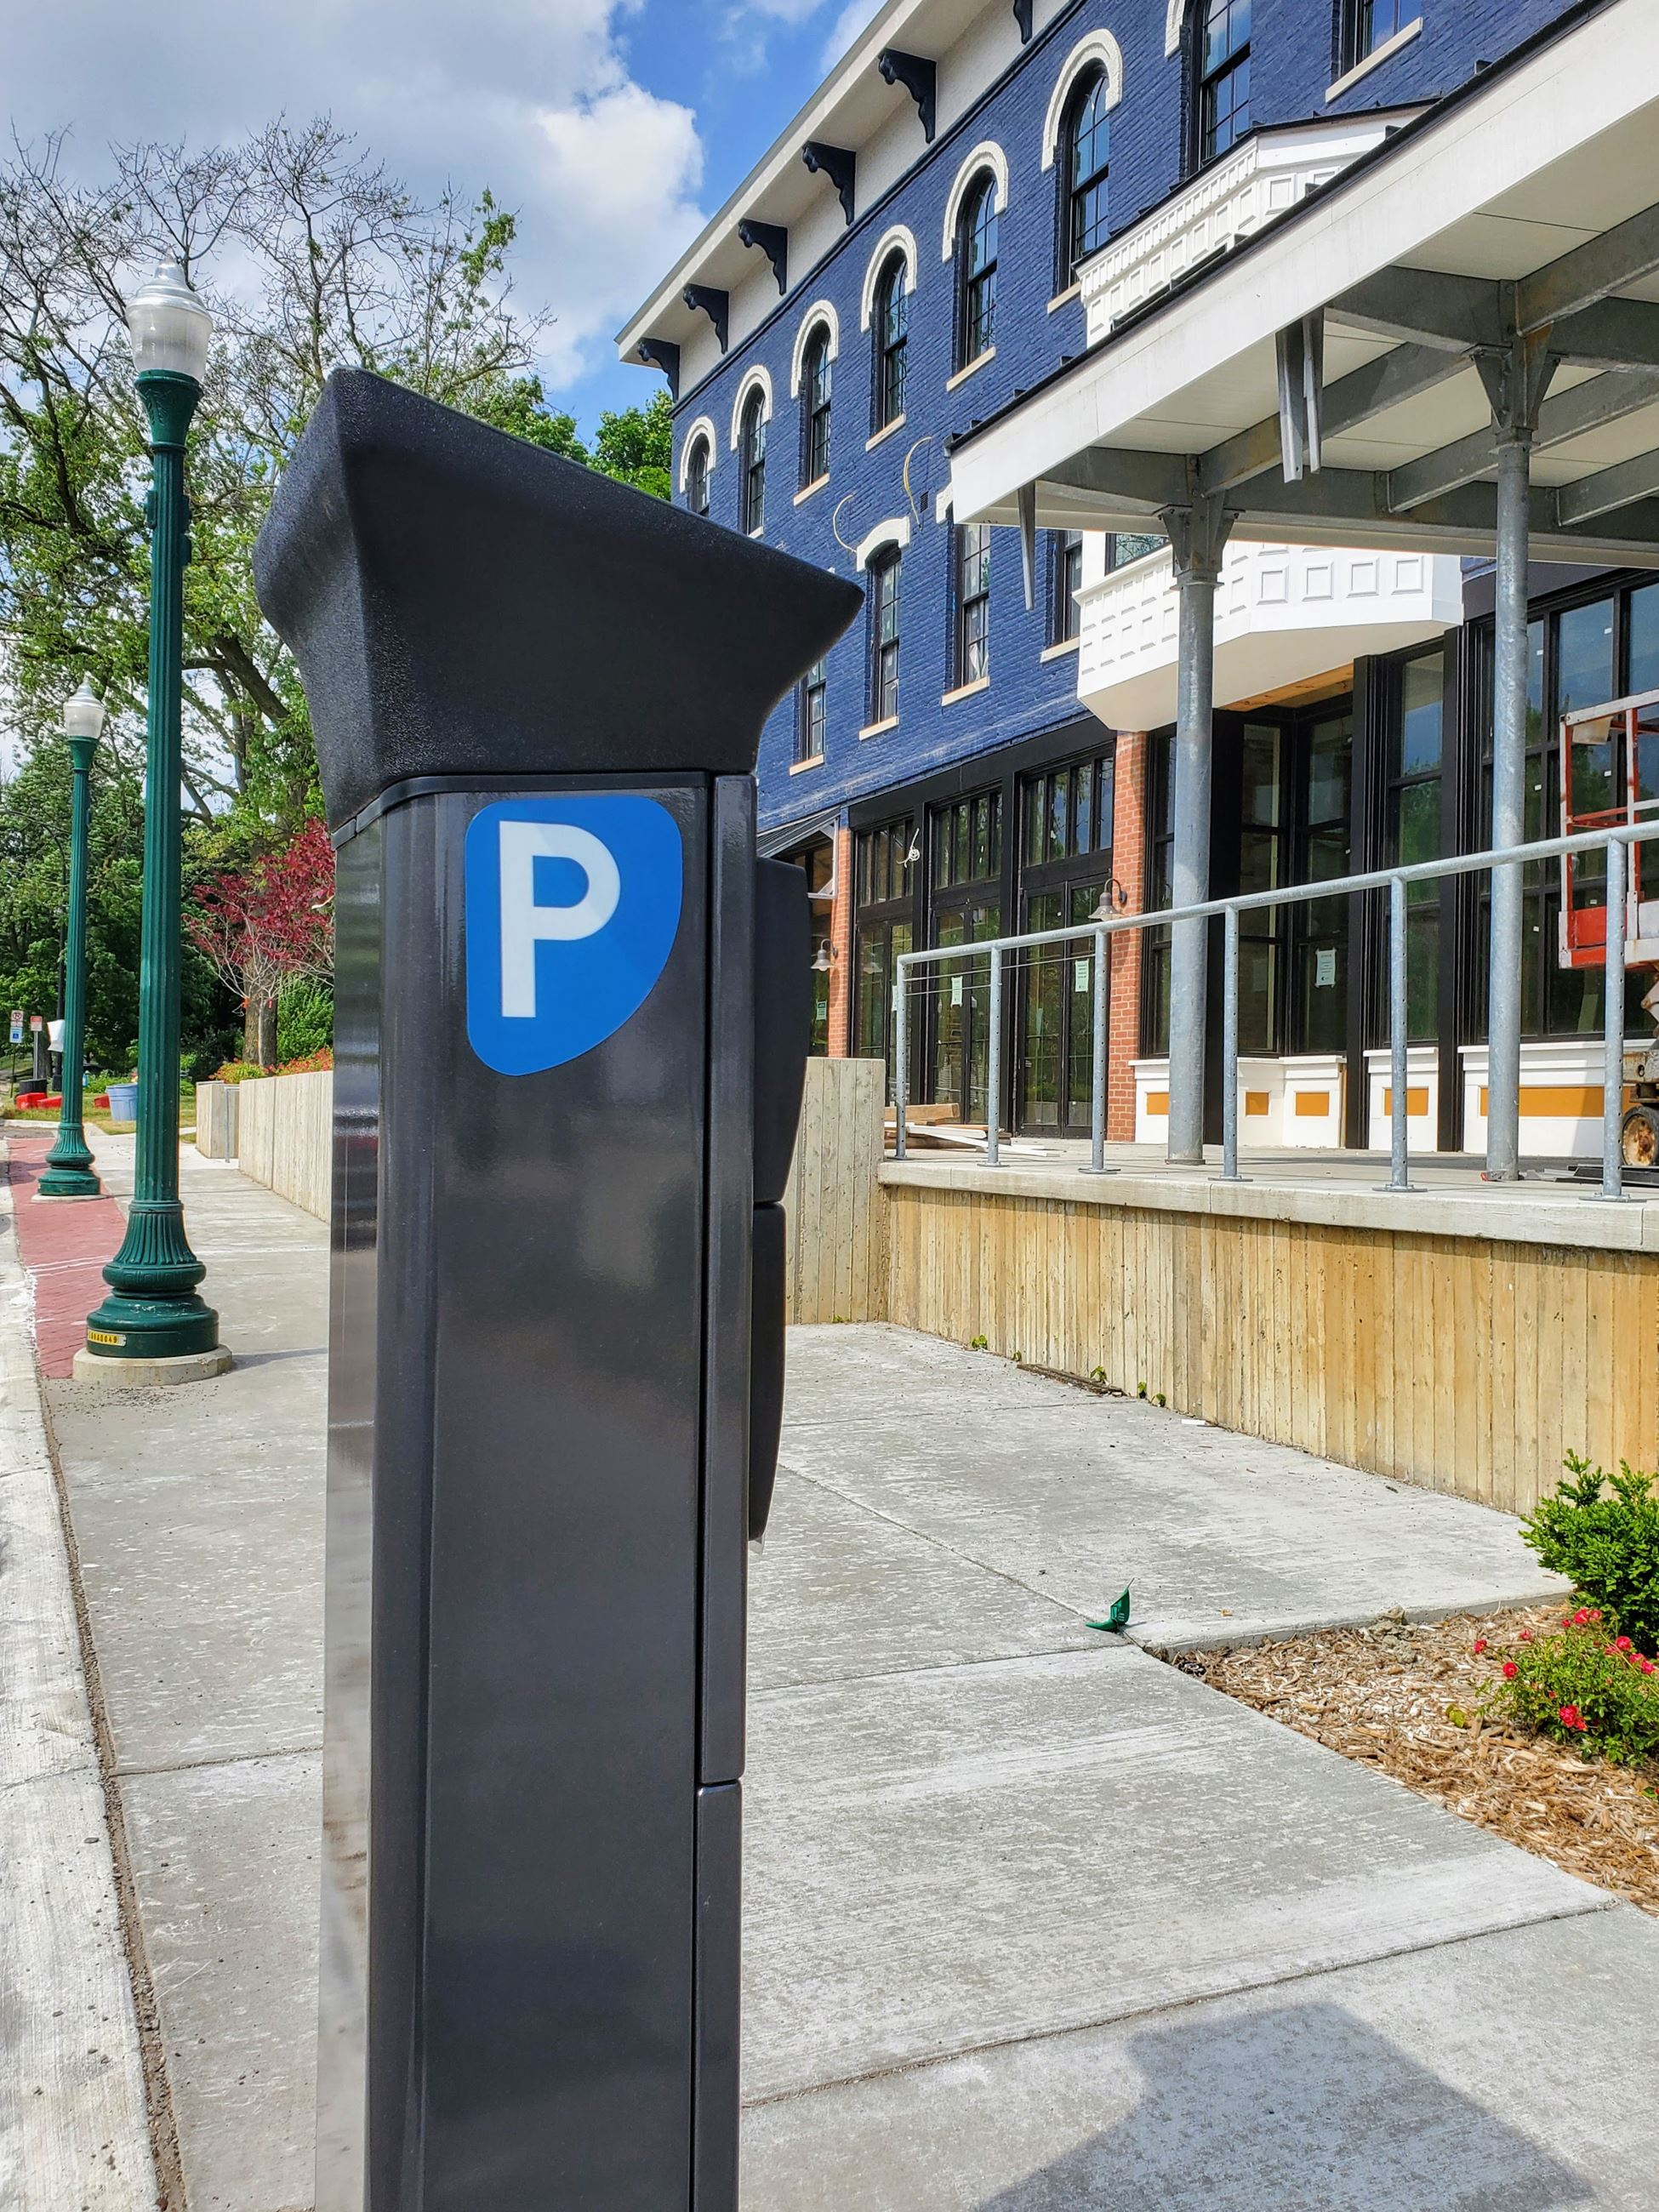 parking kiosk in front of the Thompson Block, 400 N River, June 2020